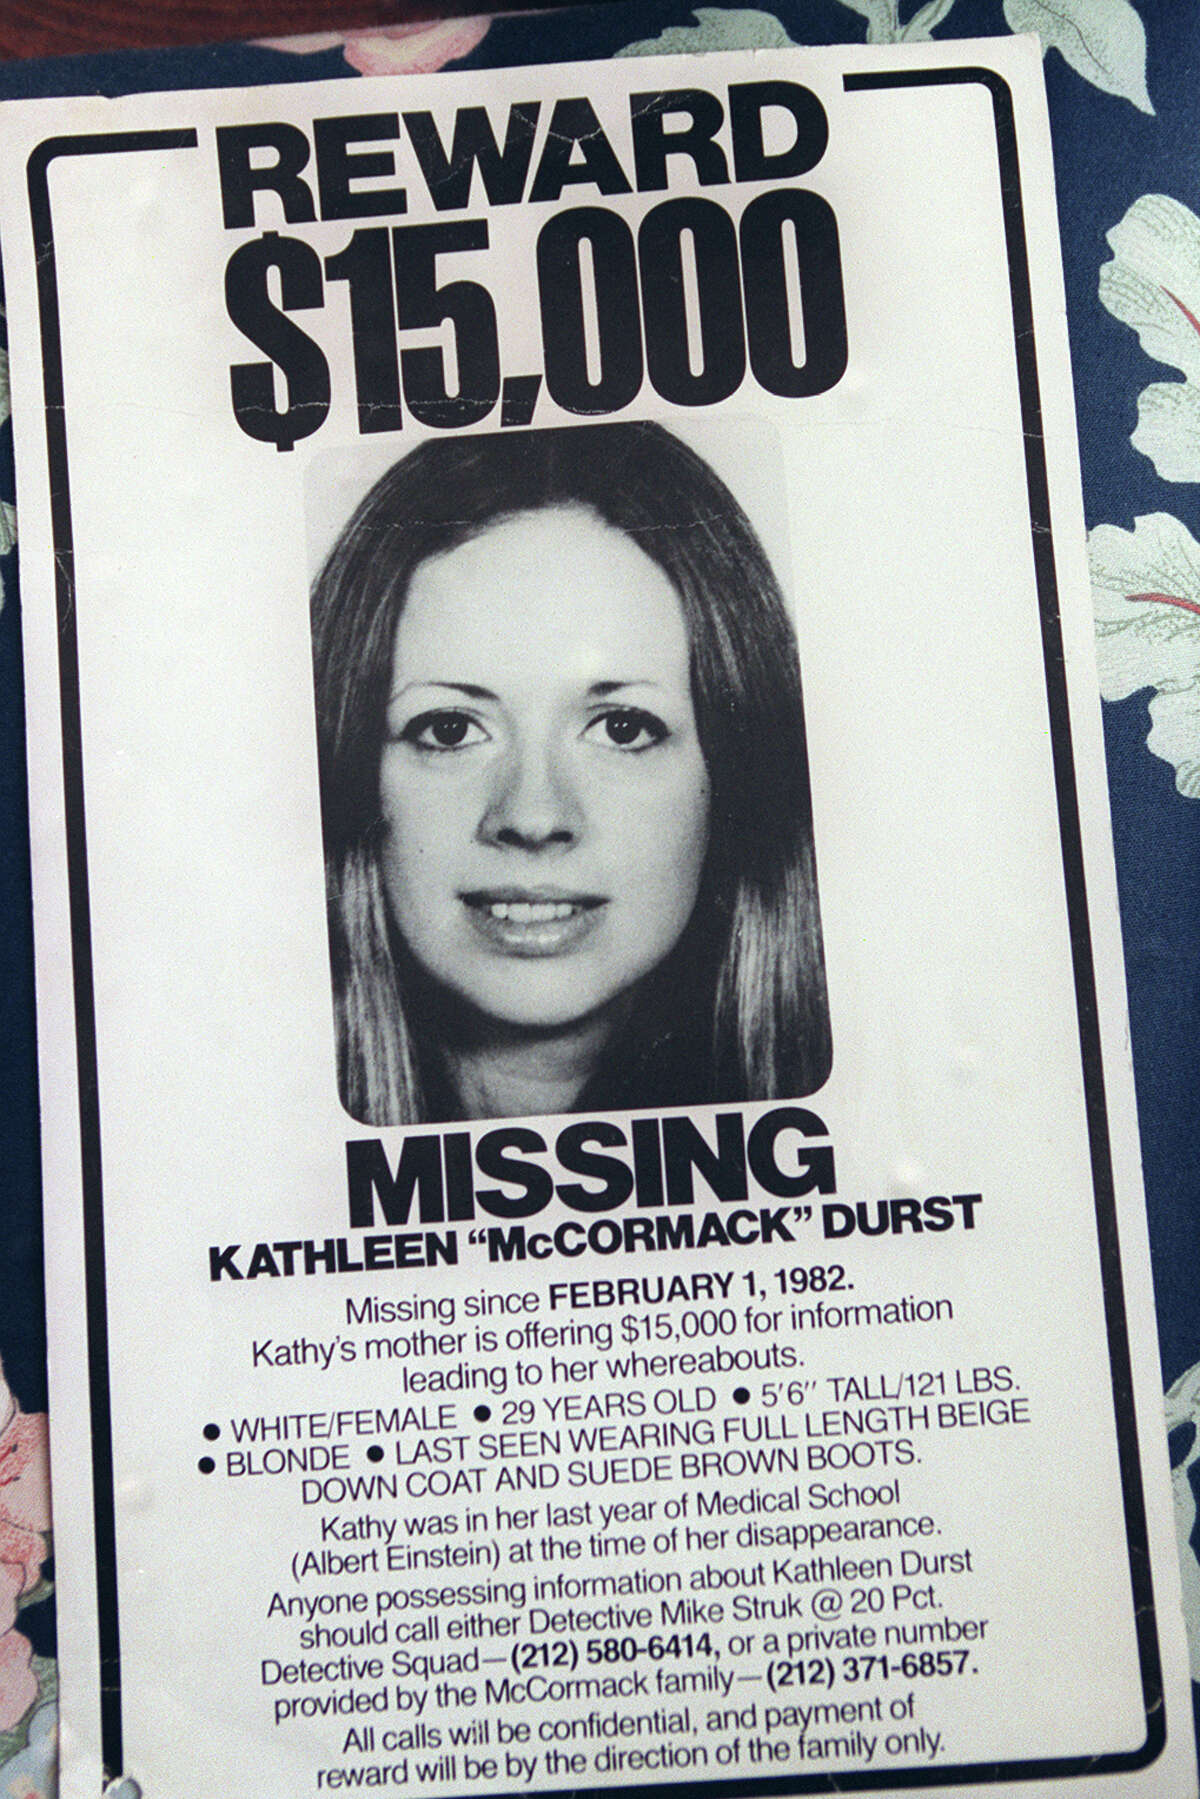 Nearly 20 years after Kathleen's disappearance New York authorities re-opened the investigation in 1999. Durst then fled to Galveston, where he rented a low-cost studio apartment posing as an elderly mute woman with a fake name, the Houston Chronicle reported.